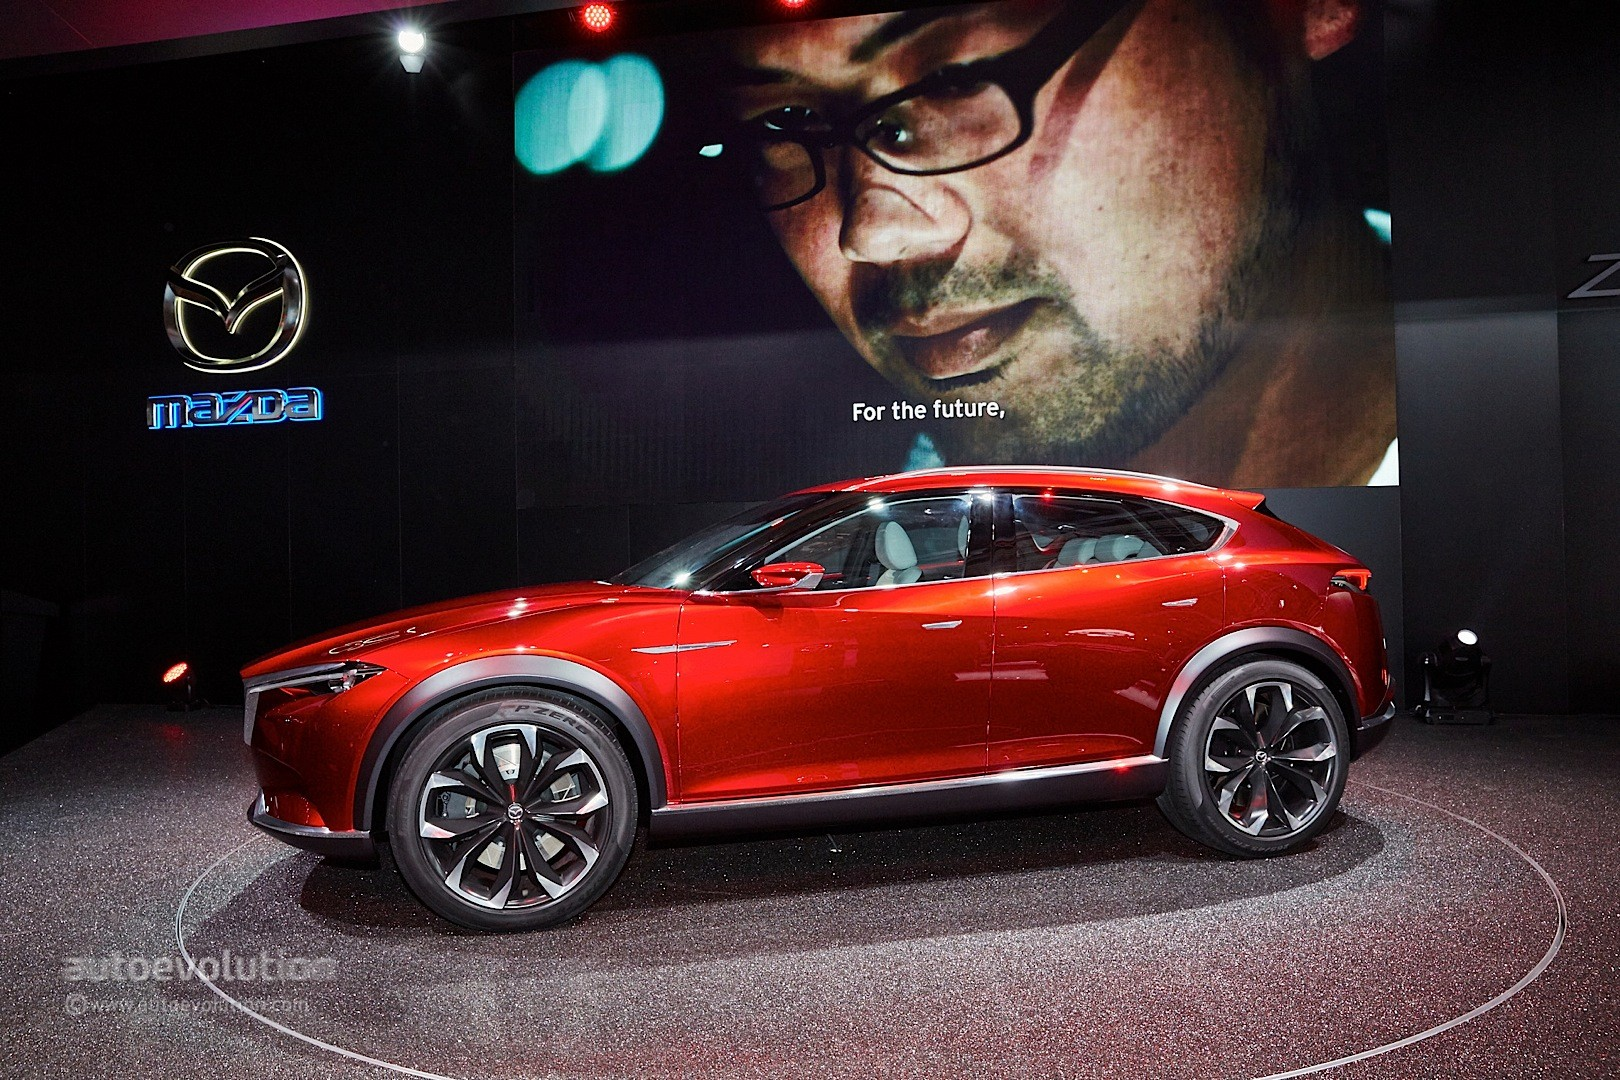 https://s1.cdn.autoevolution.com/images/news/gallery/mazda-koeru-concept-is-a-stunning-for-the-next-japanese-suv-live-photos_10.jpg